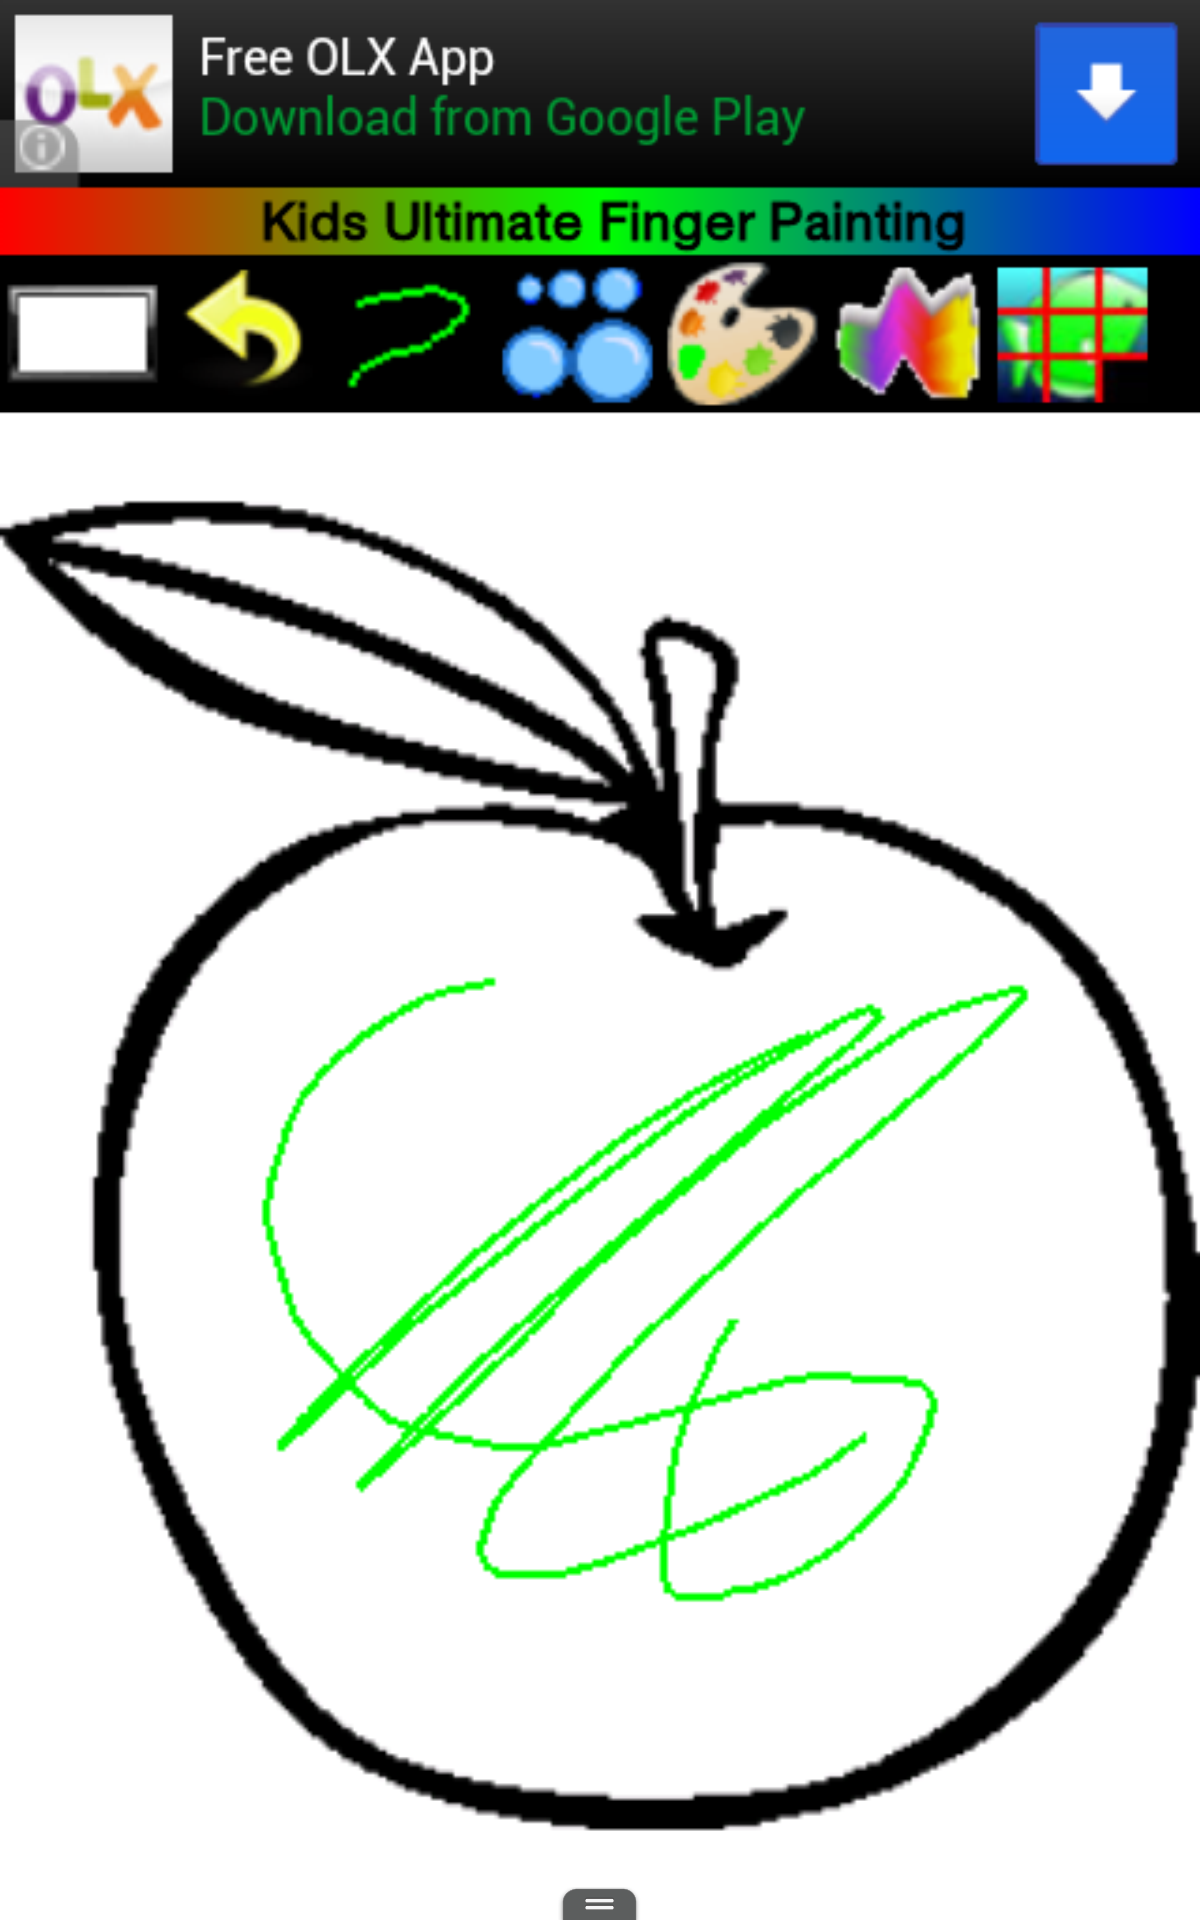 Amazon.com: Kids Ultimate Finger Painting (Free): Appstore for Android